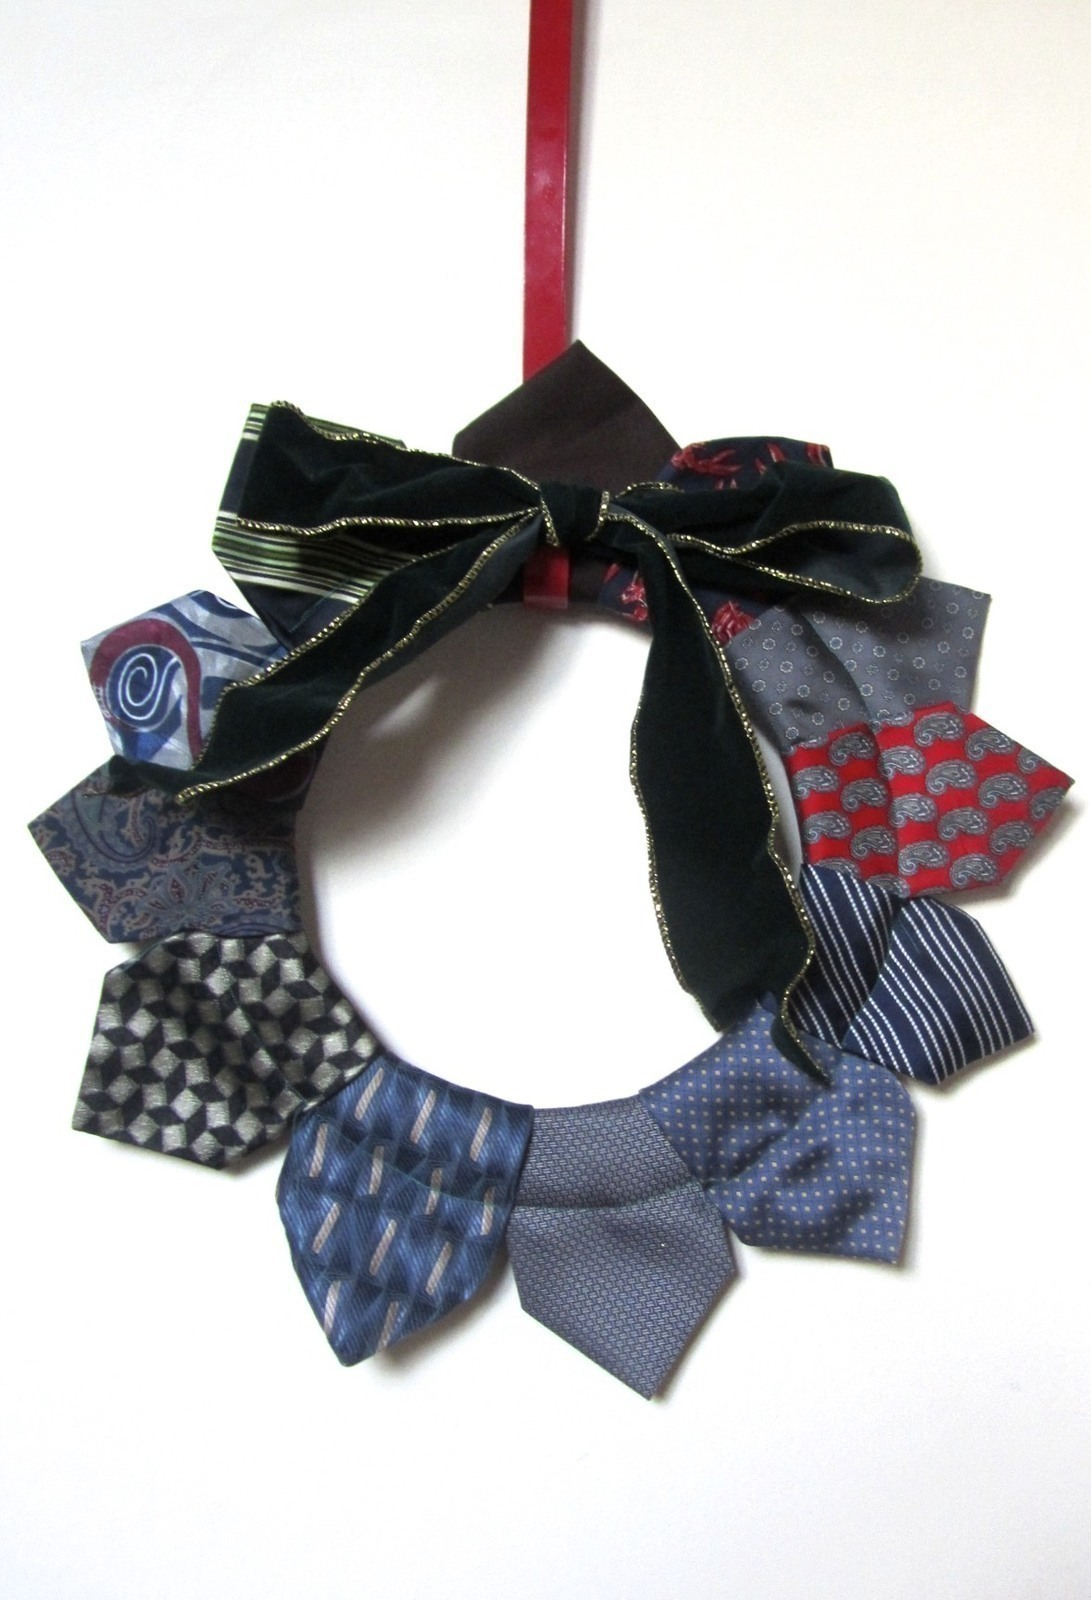 Neck Tie Wreath 183 How To Make A Fabric Wreath 183 Sewing On